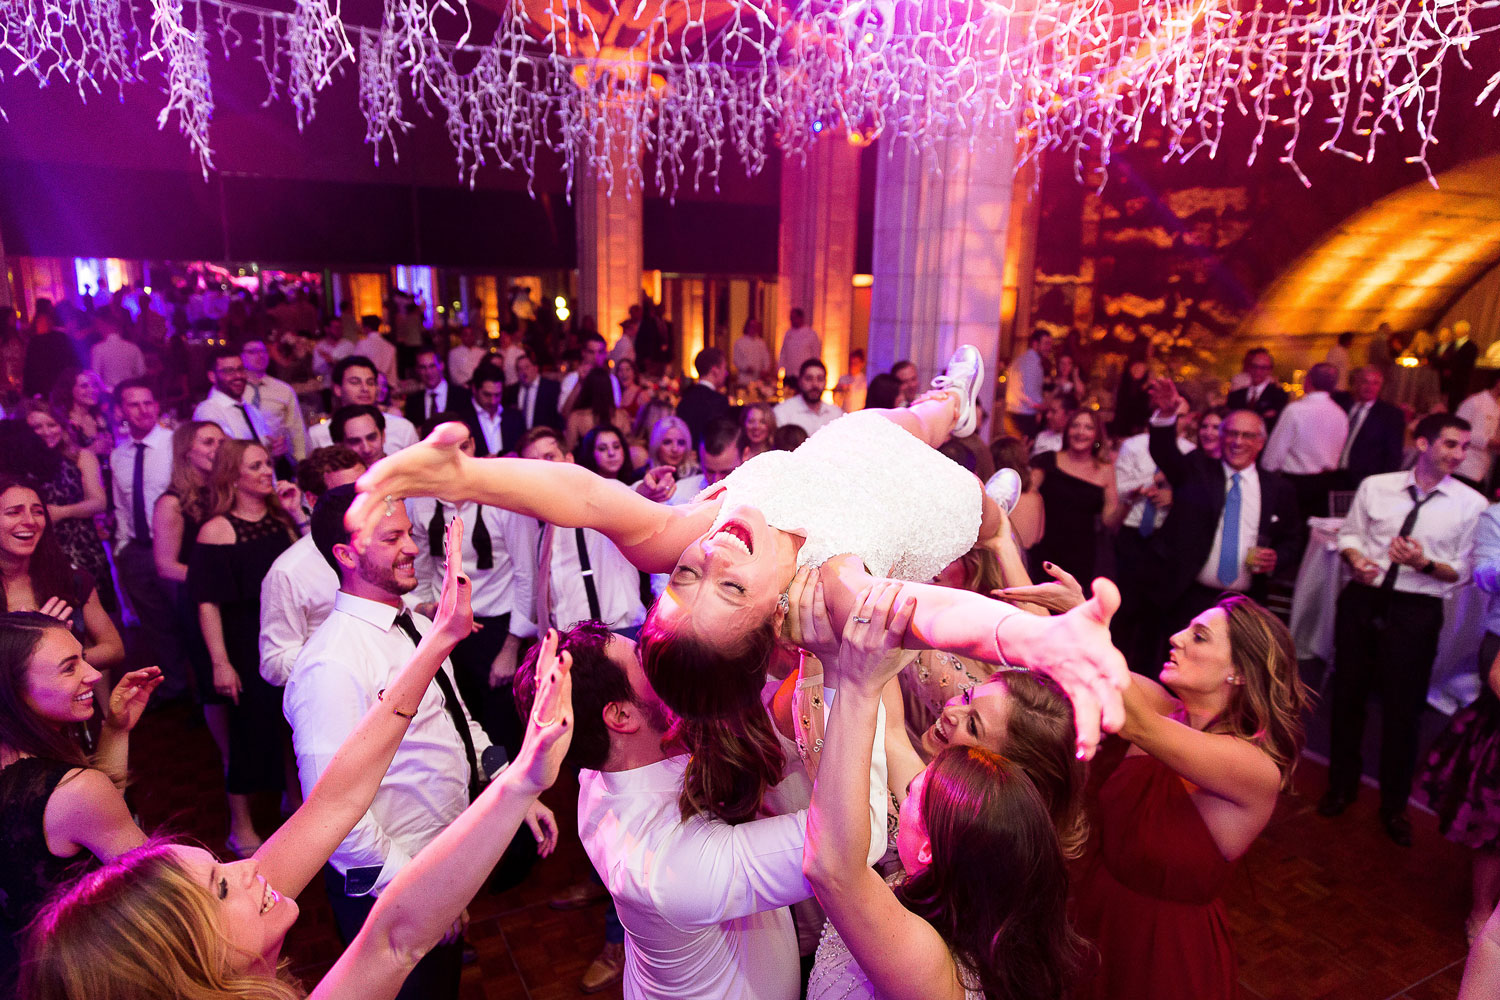 A Playlist of Top Wedding Songs from Satellite Radio